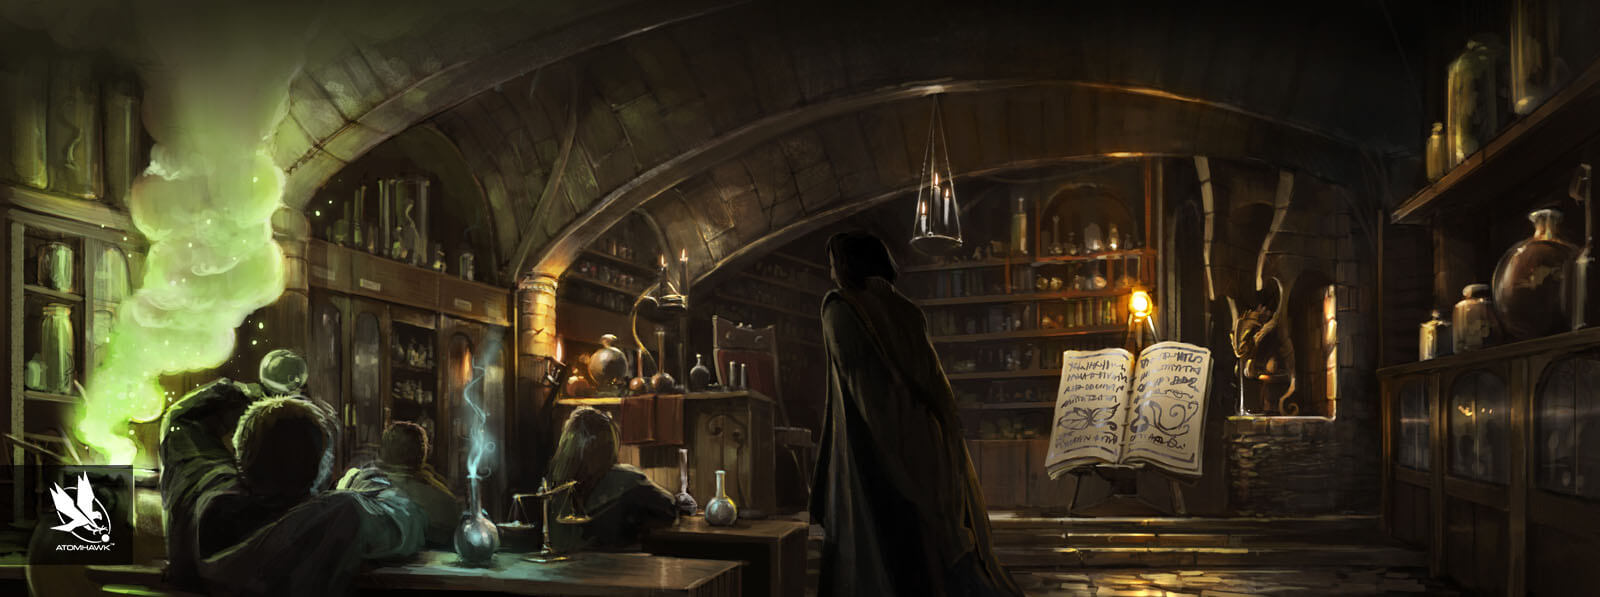 Pottermore - Concept Art - Harrys first potion lesson